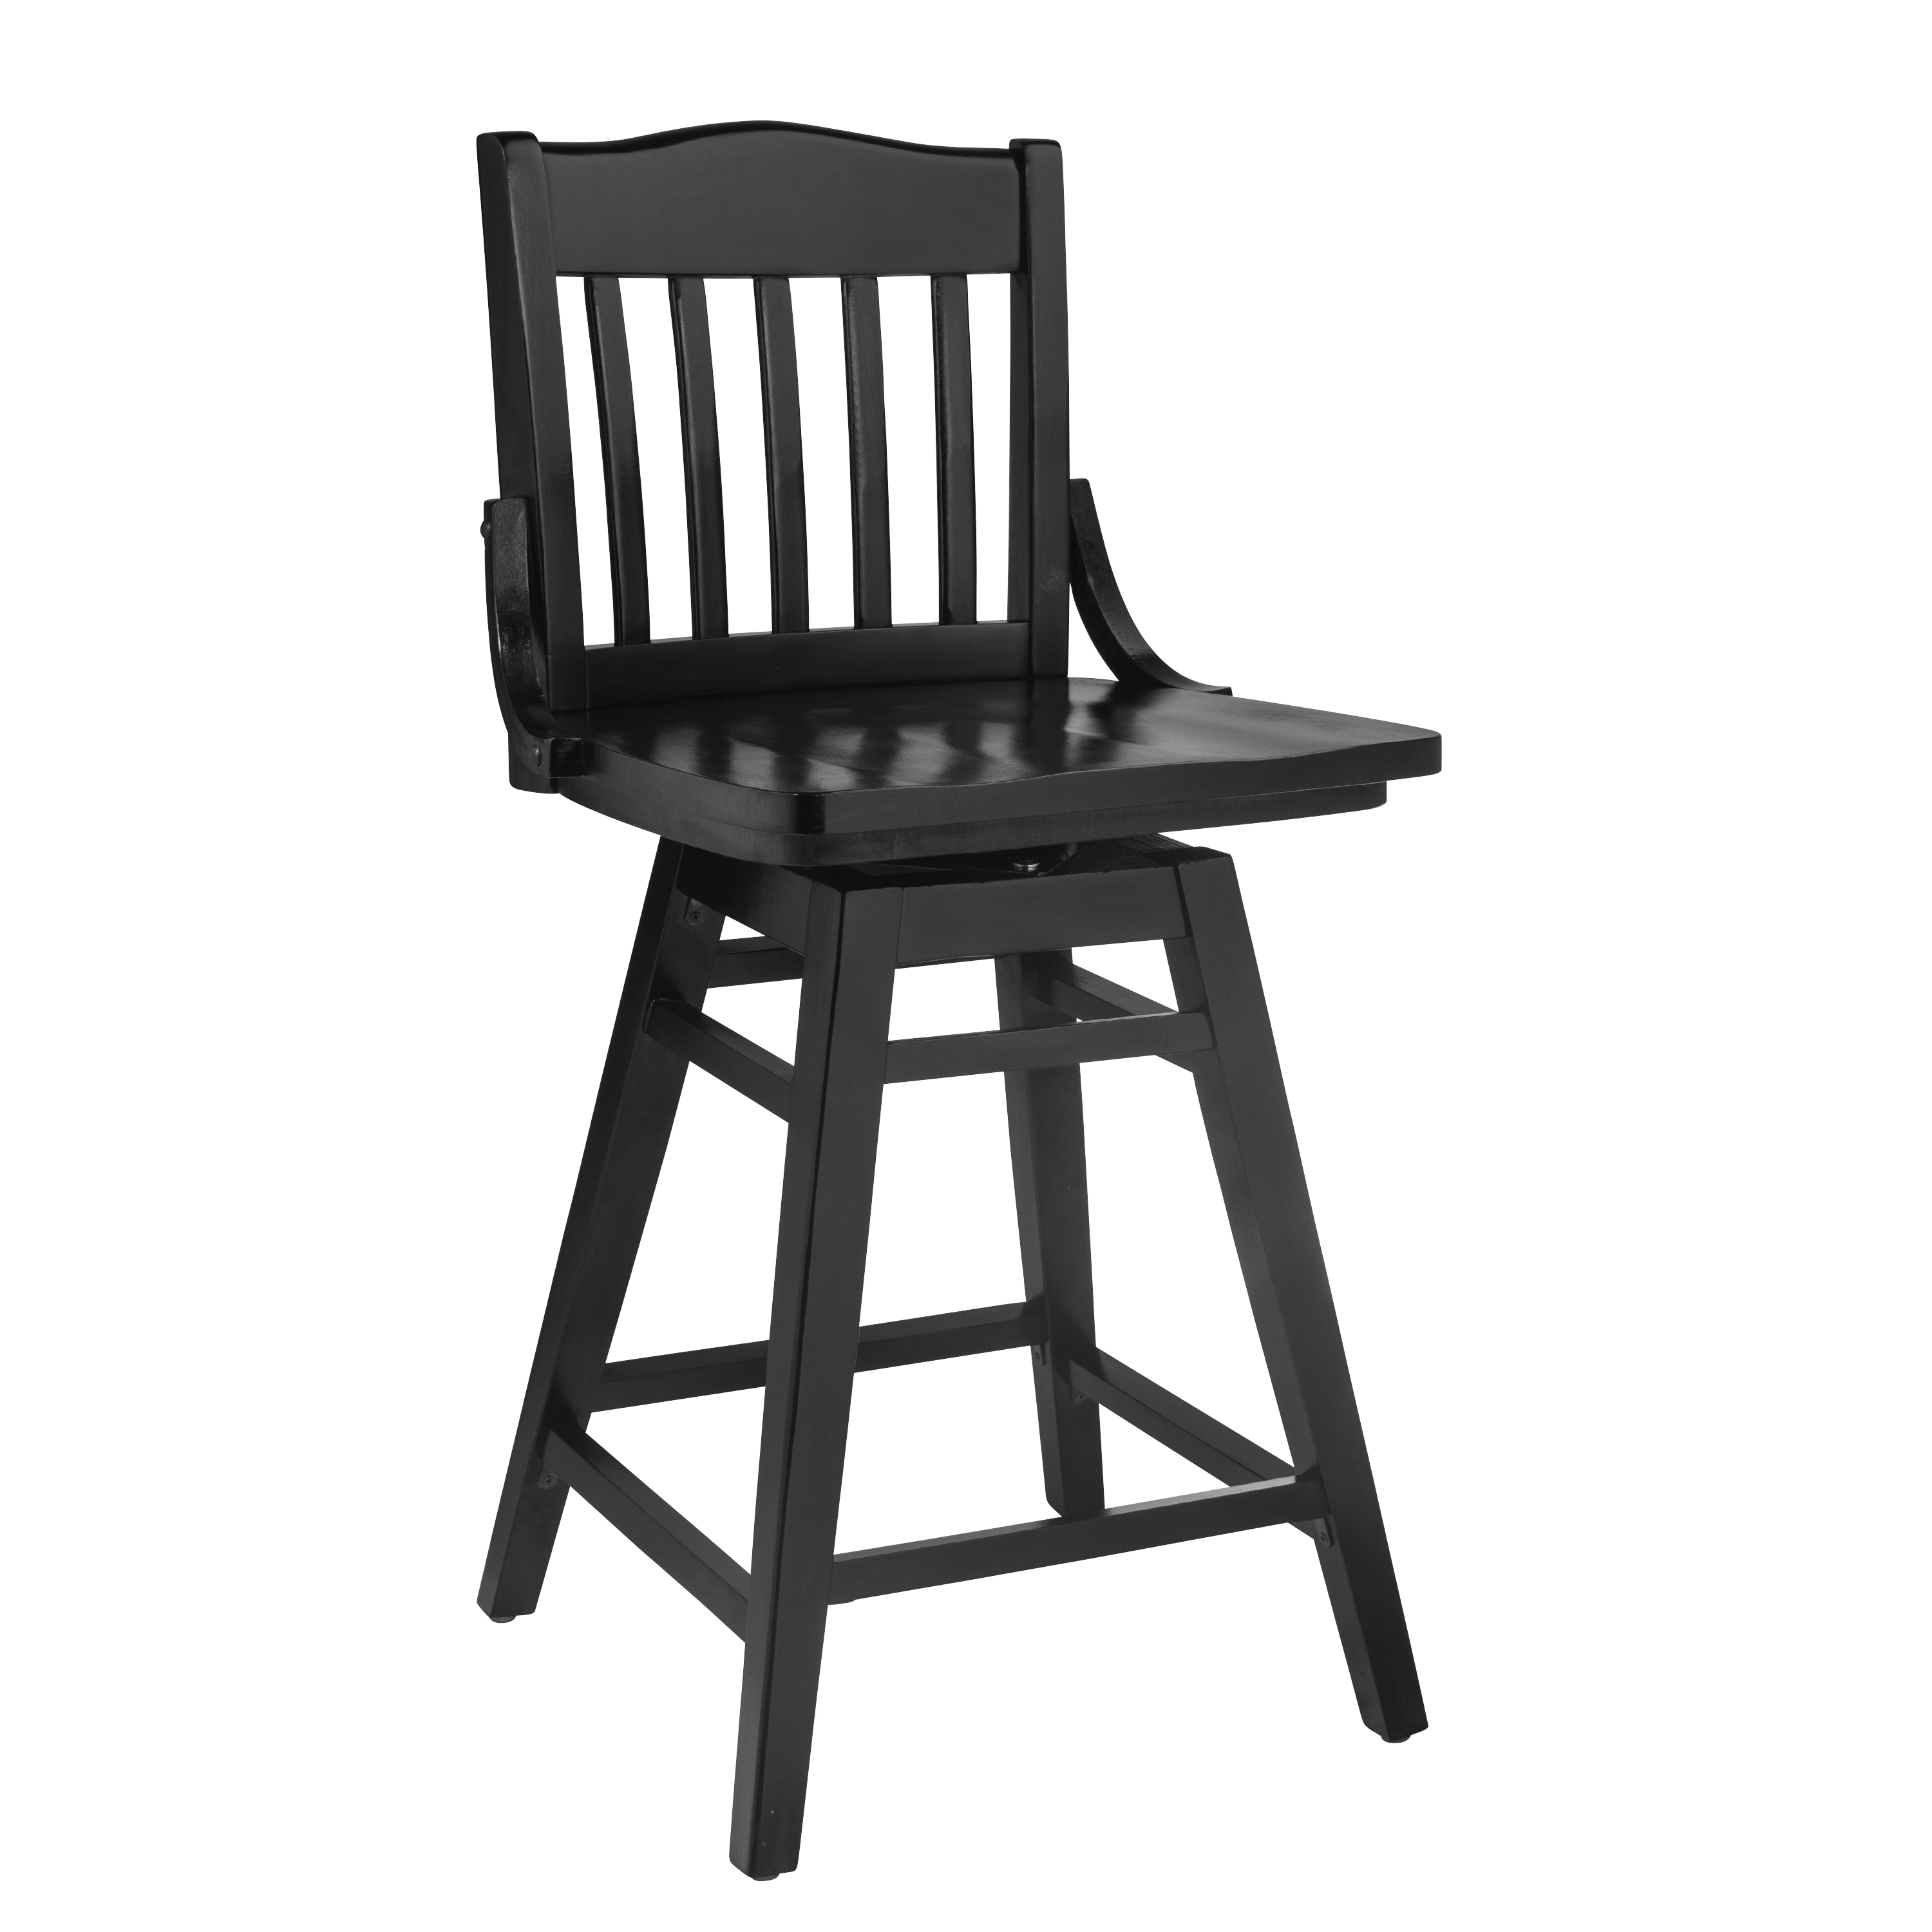 Admirable Schoolhouse Swivel Counter Stool Unemploymentrelief Wooden Chair Designs For Living Room Unemploymentrelieforg